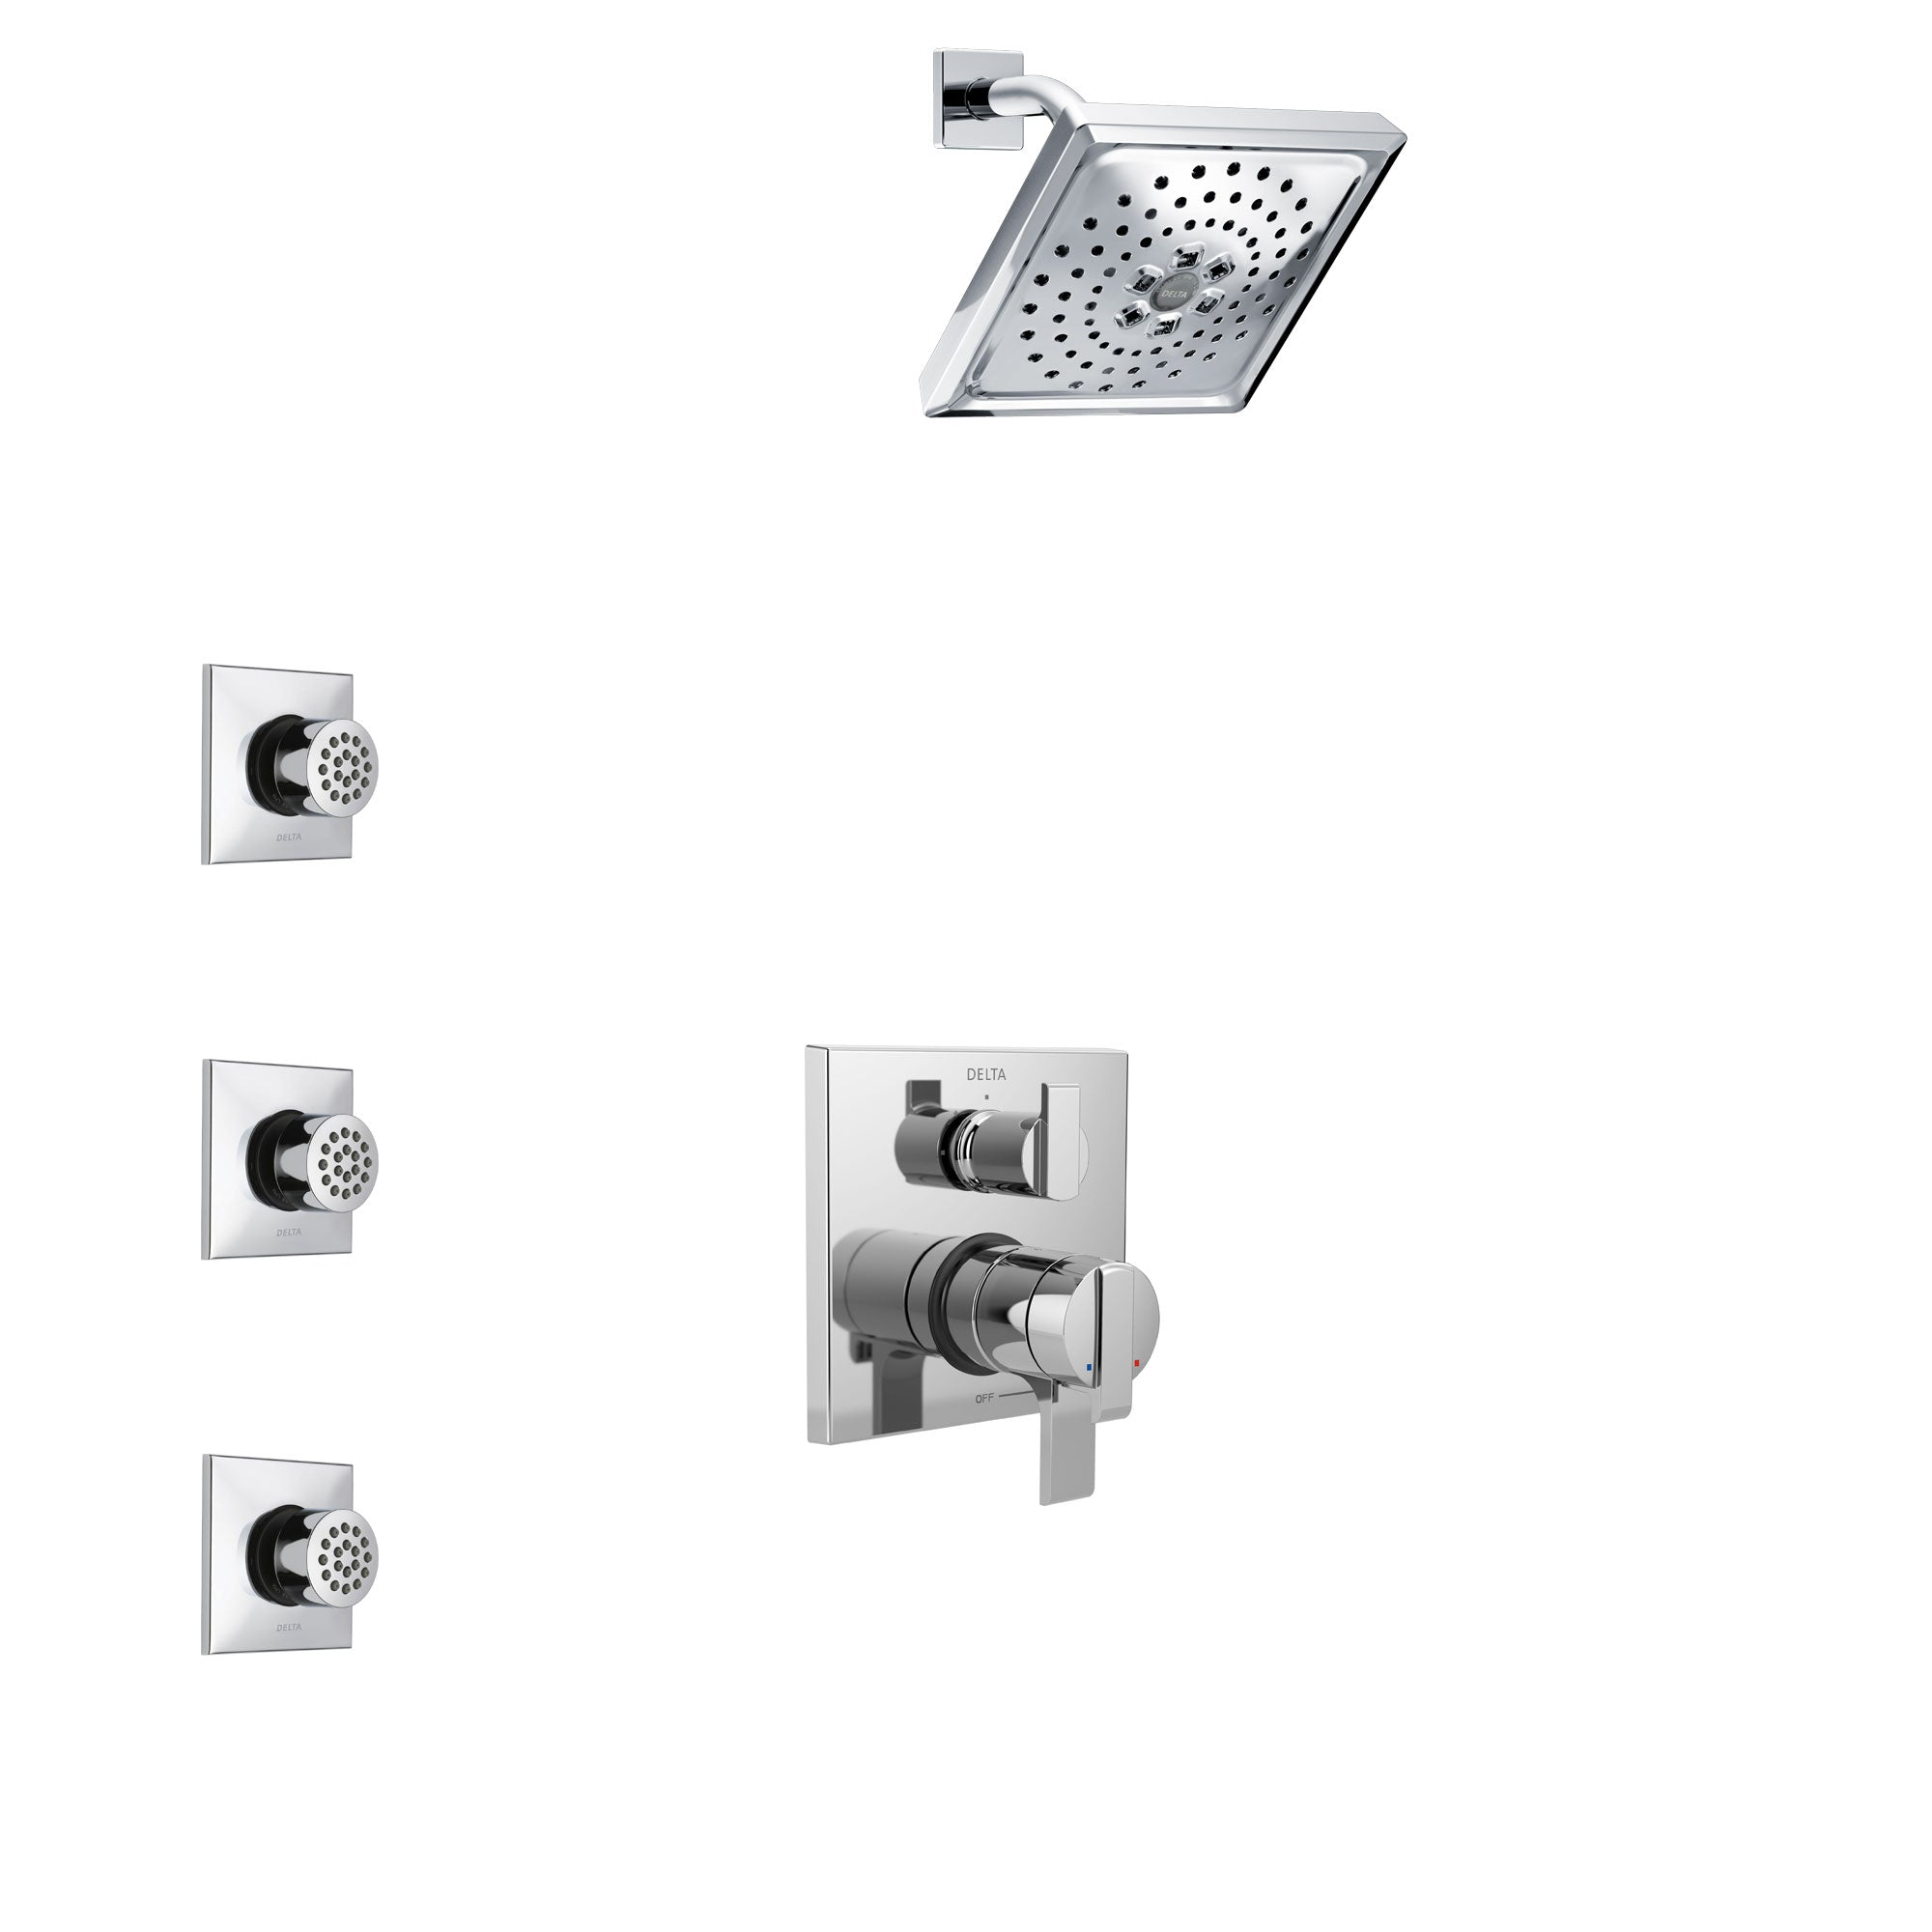 Delta Ara Chrome Finish Shower System with Dual Control Handle, Integrated 3-Setting Diverter, Showerhead, and 3 Body Sprays SS278673